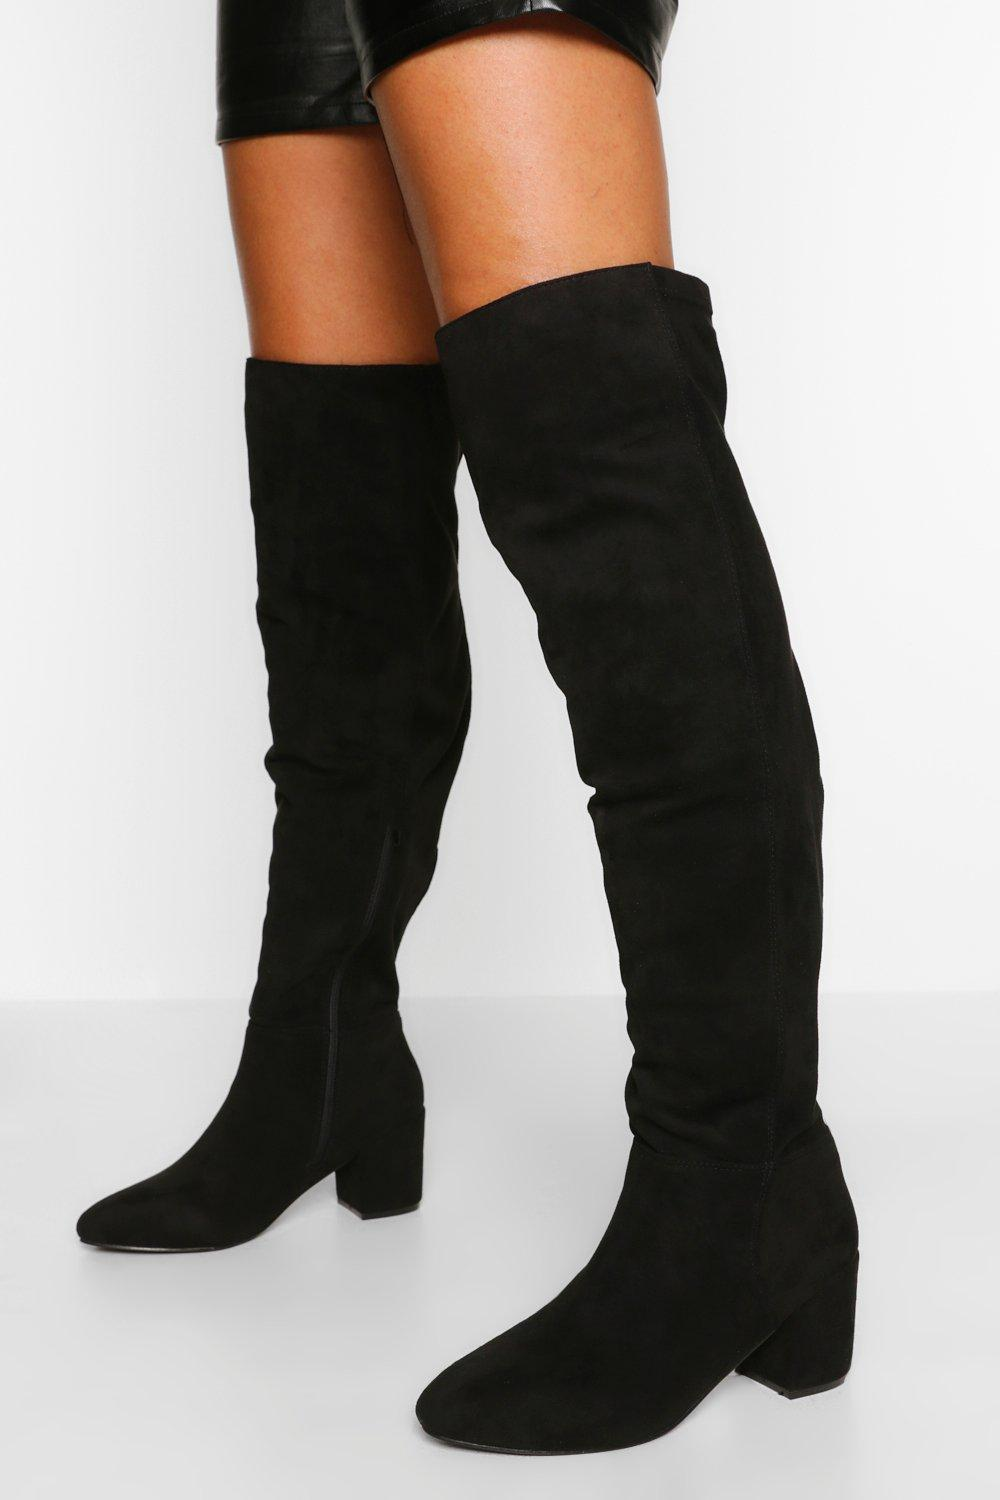 Vintage Boots- Buy Winter Retro Boots Womens Wide Fit Block Heel Stretch Over The Knee Boot - Black - 10 $45.00 AT vintagedancer.com